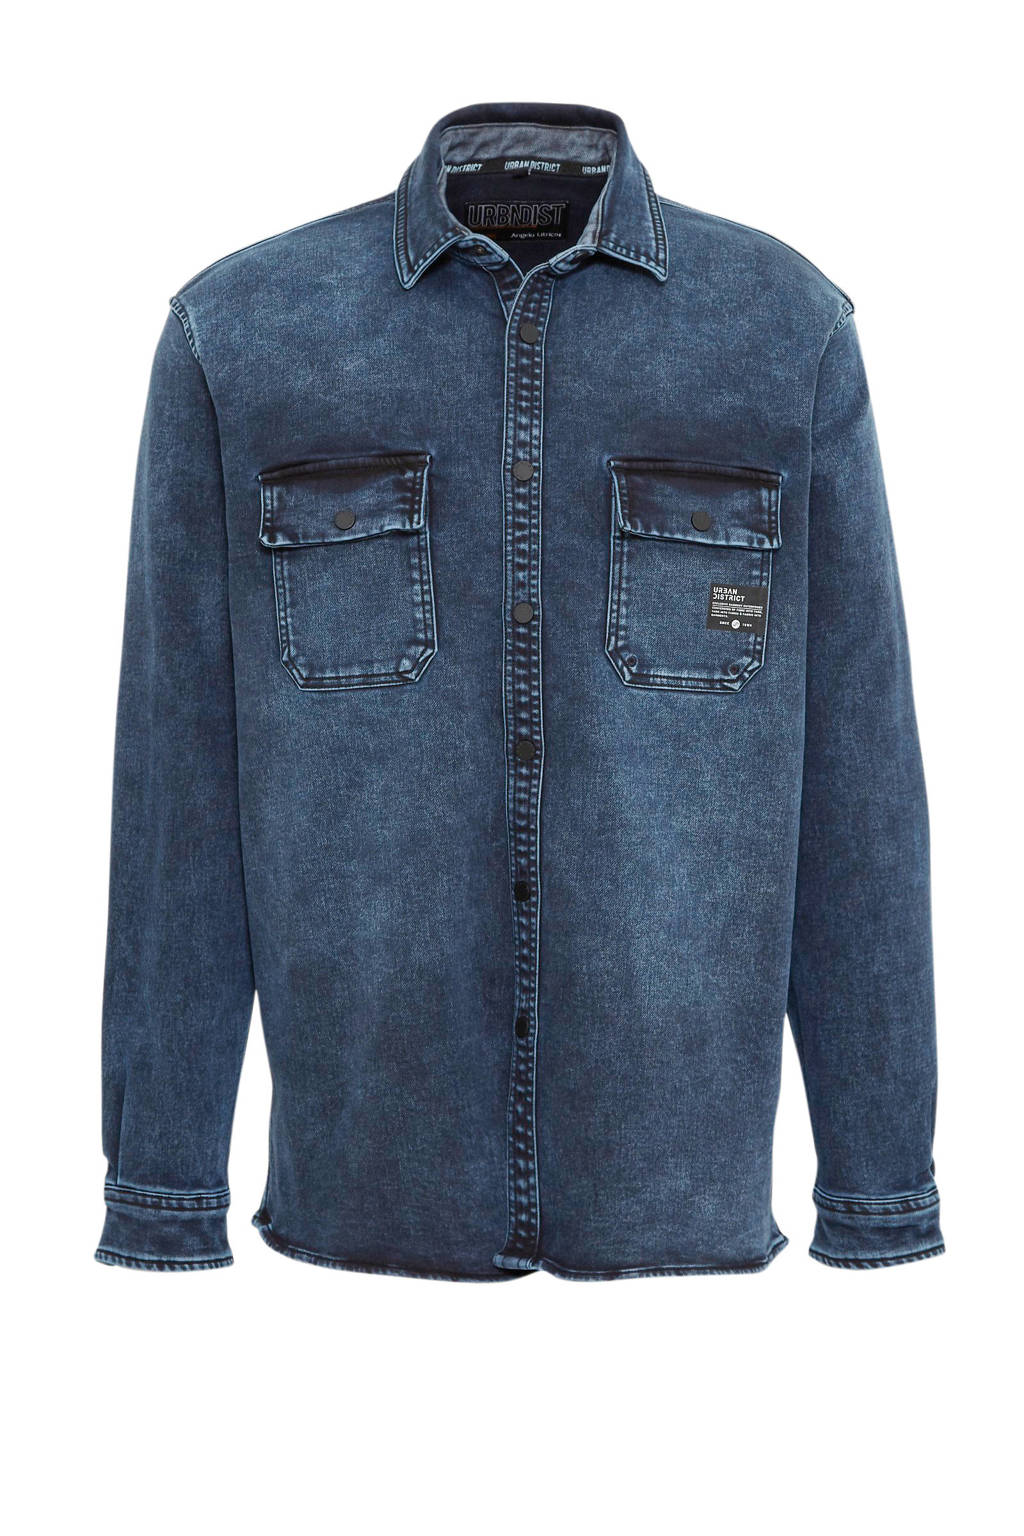 C&A Angelo Litrico regular fit overhemd donkerblauw, Donkerblauw